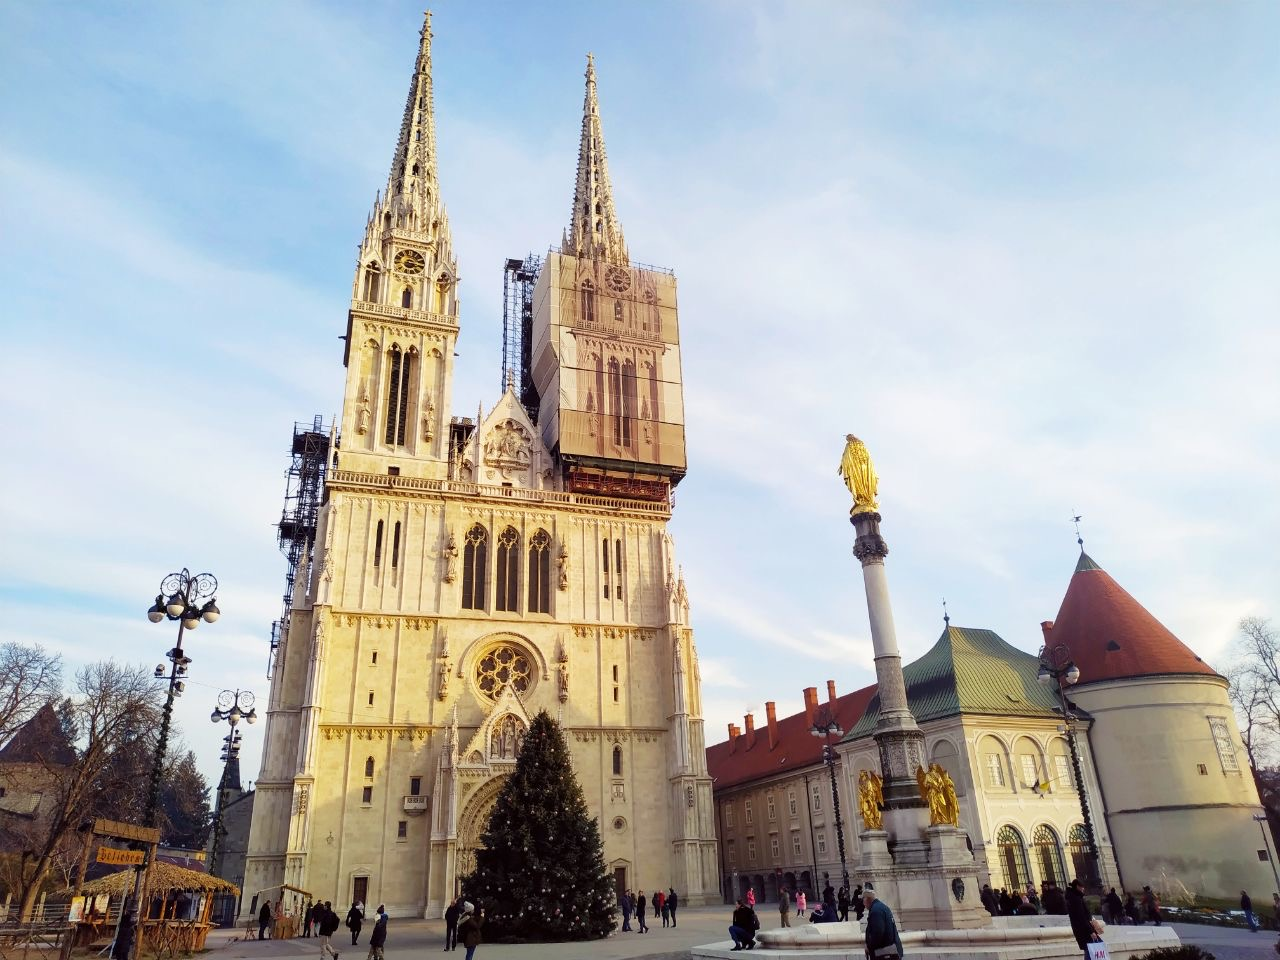 zagreb for digital nomads, Life in Zagreb for digital nomads, Micropreneur Life